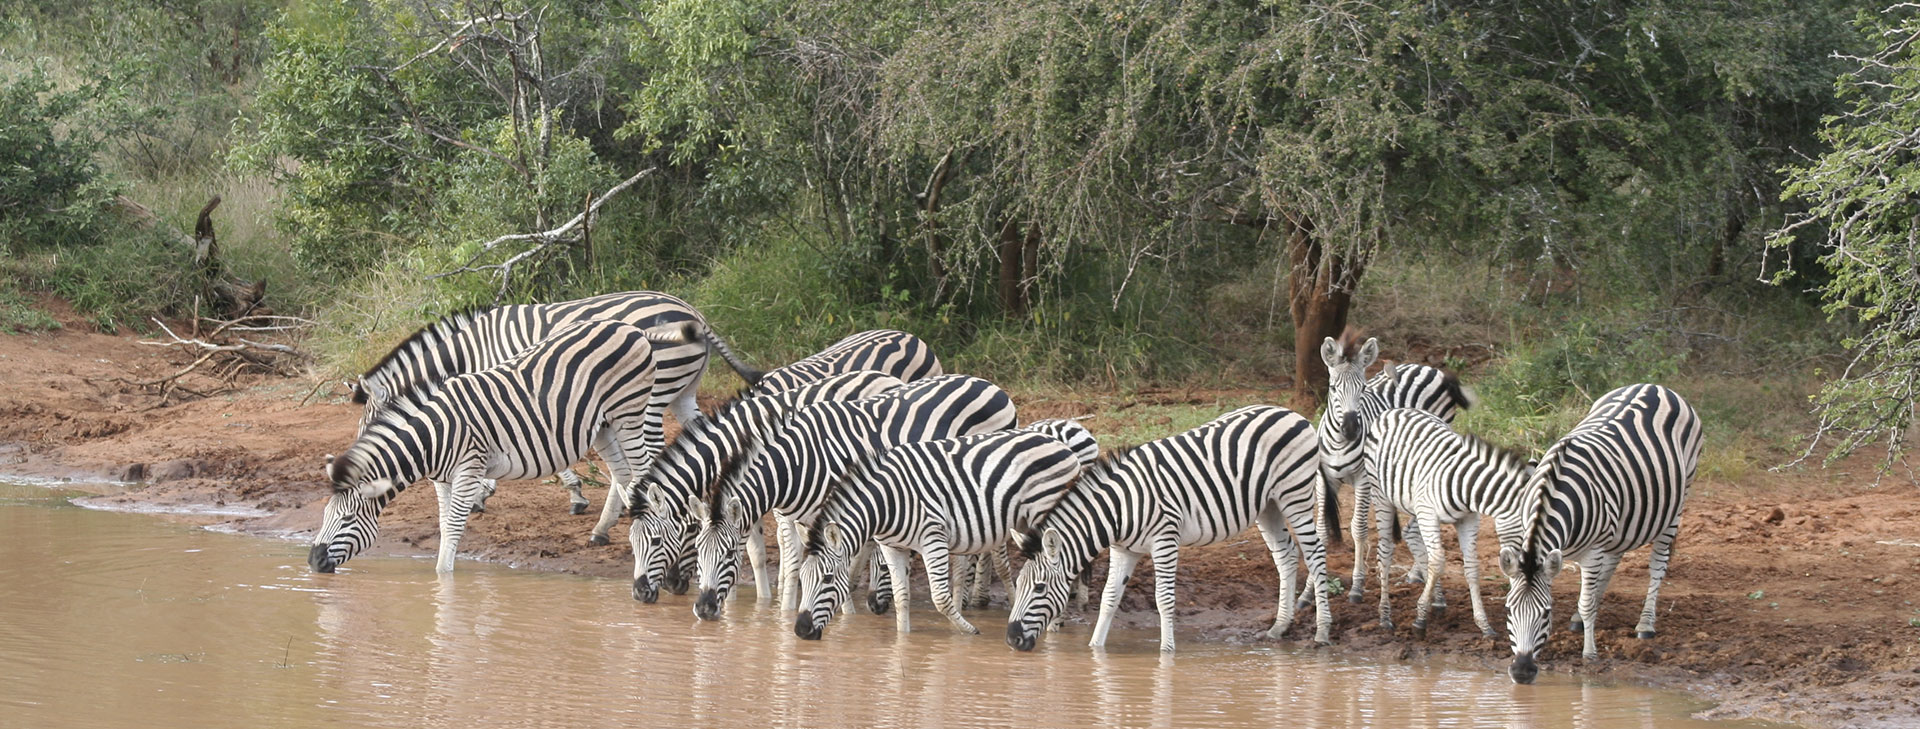 Zebras are common in South Africa's Kruger National Park